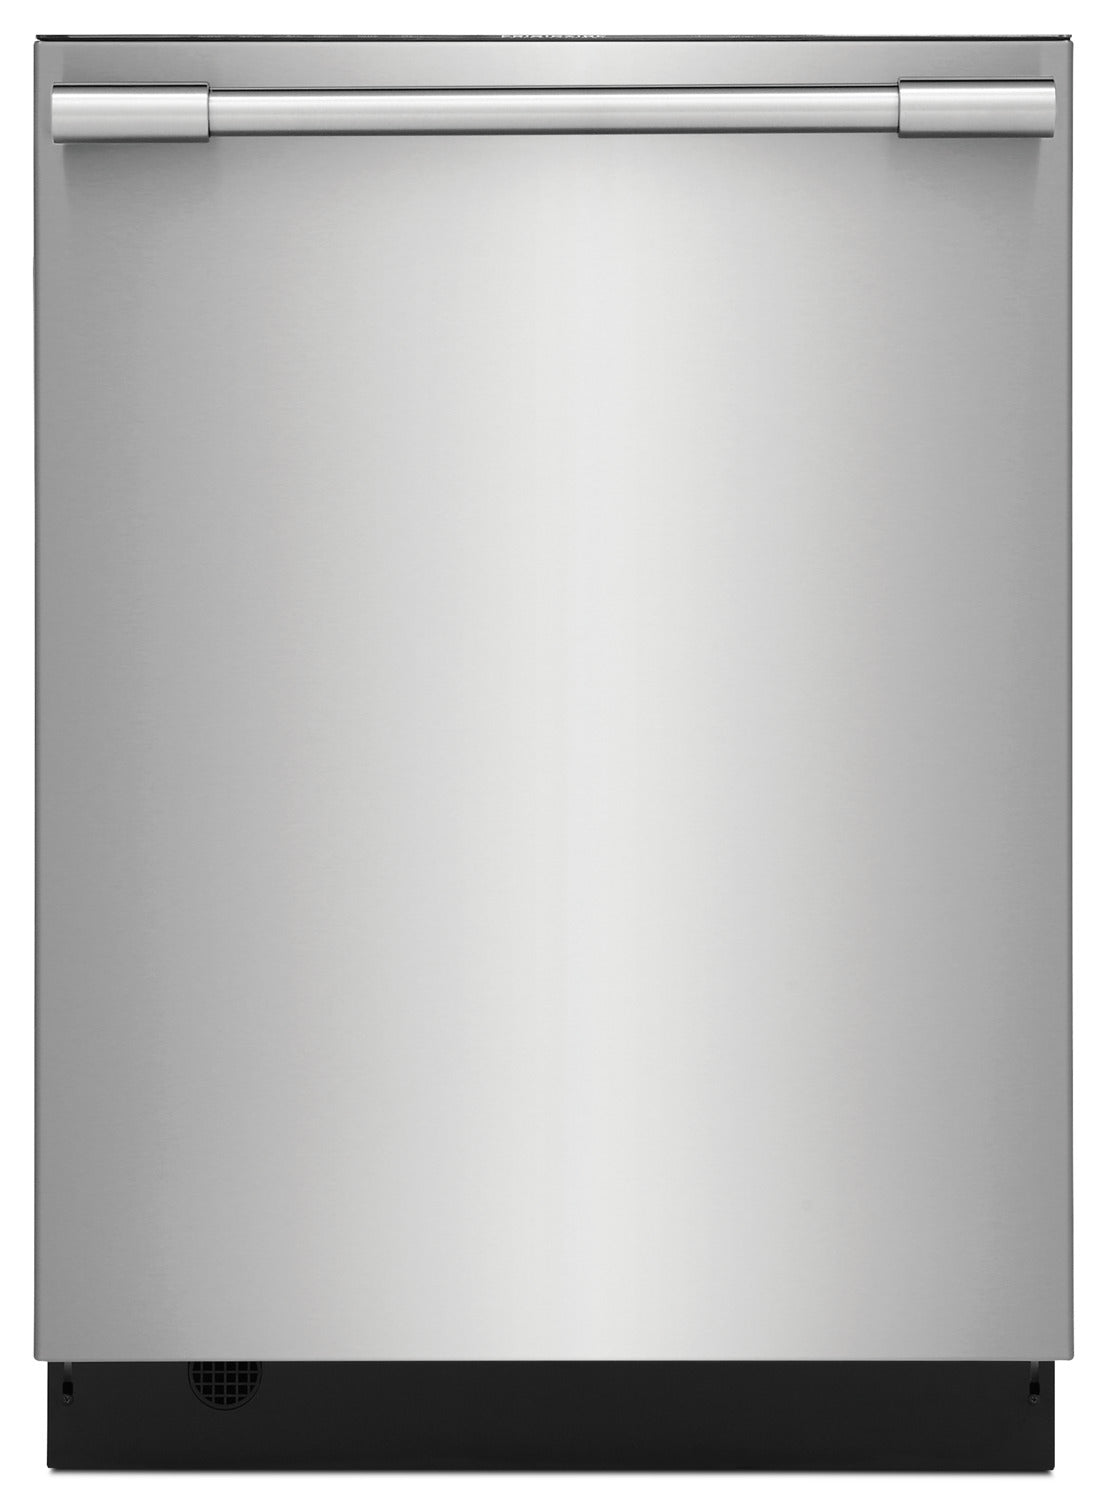 frigidaire professional built-in dishwasher with evendry